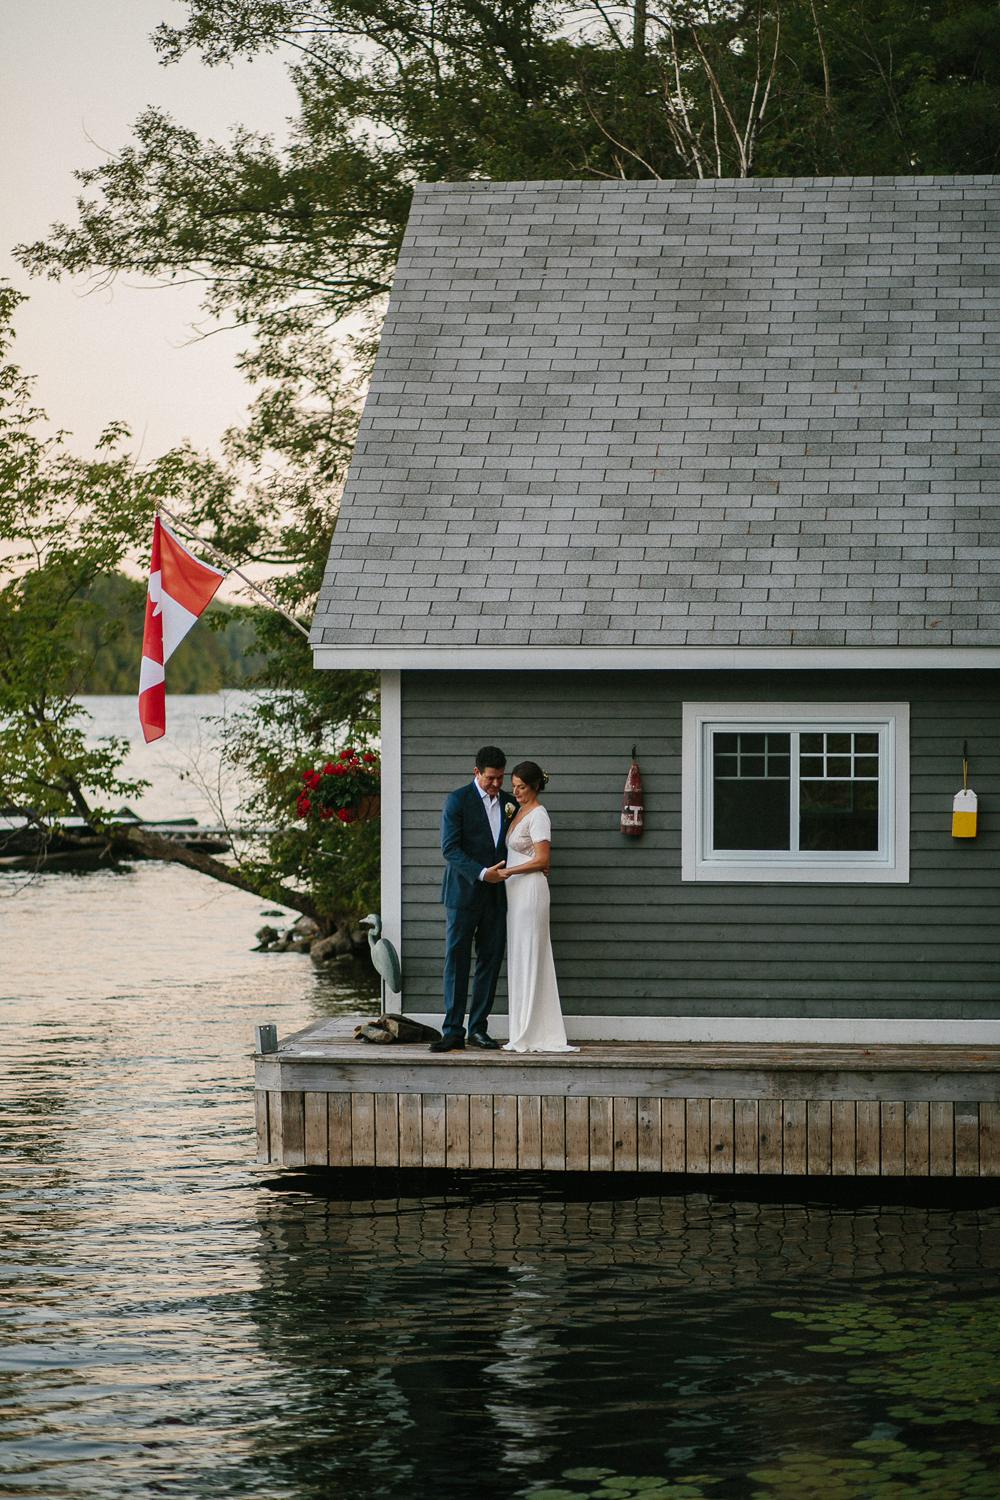 otty lake cottage wedding perth ontario-222.jpg